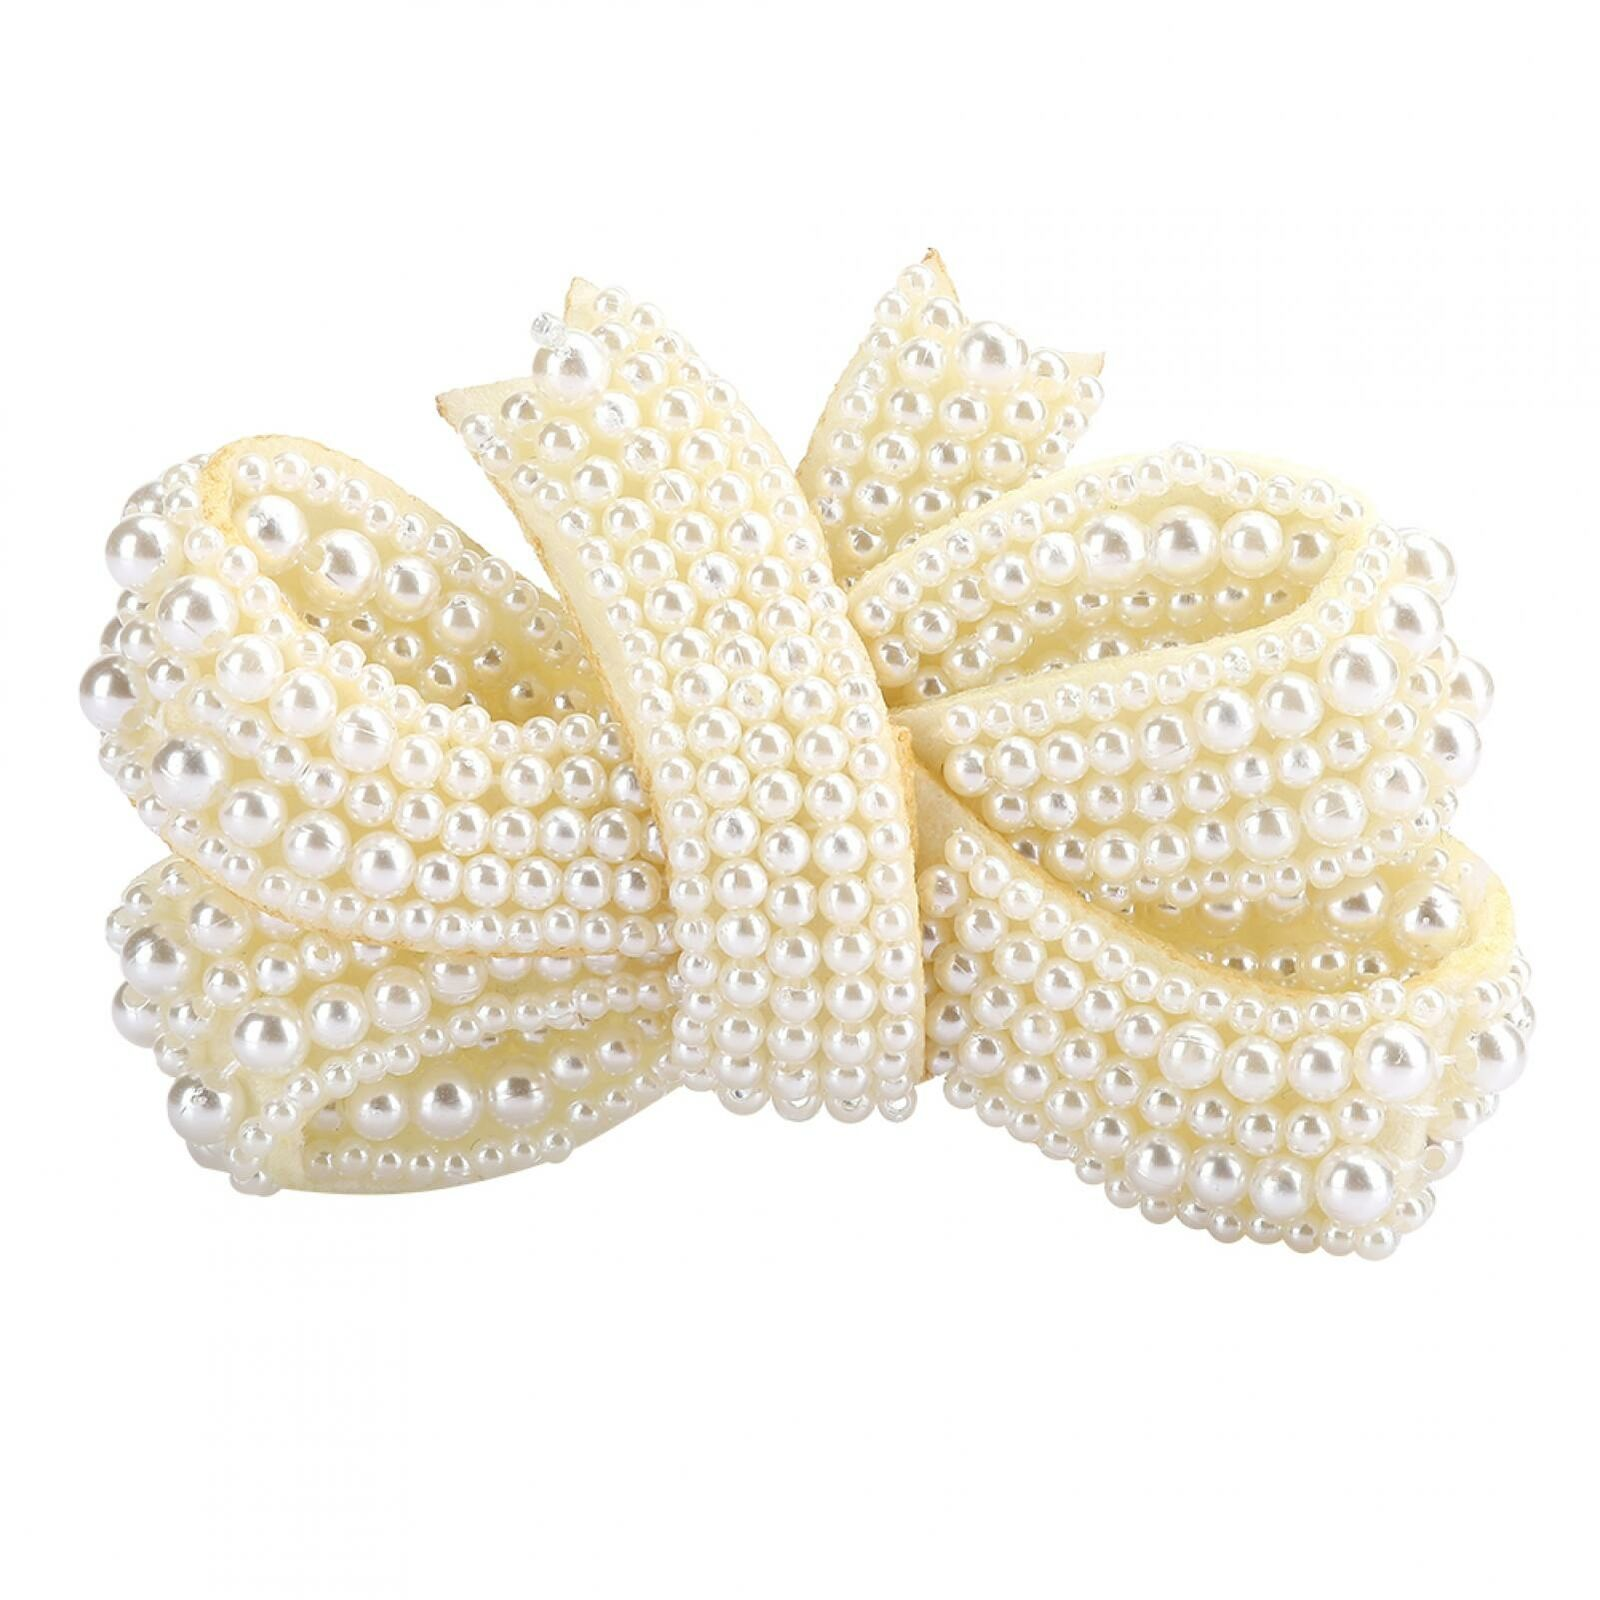 Pearl Bows Clothing Accessories Fashionable Delicate High Quality For Decoration